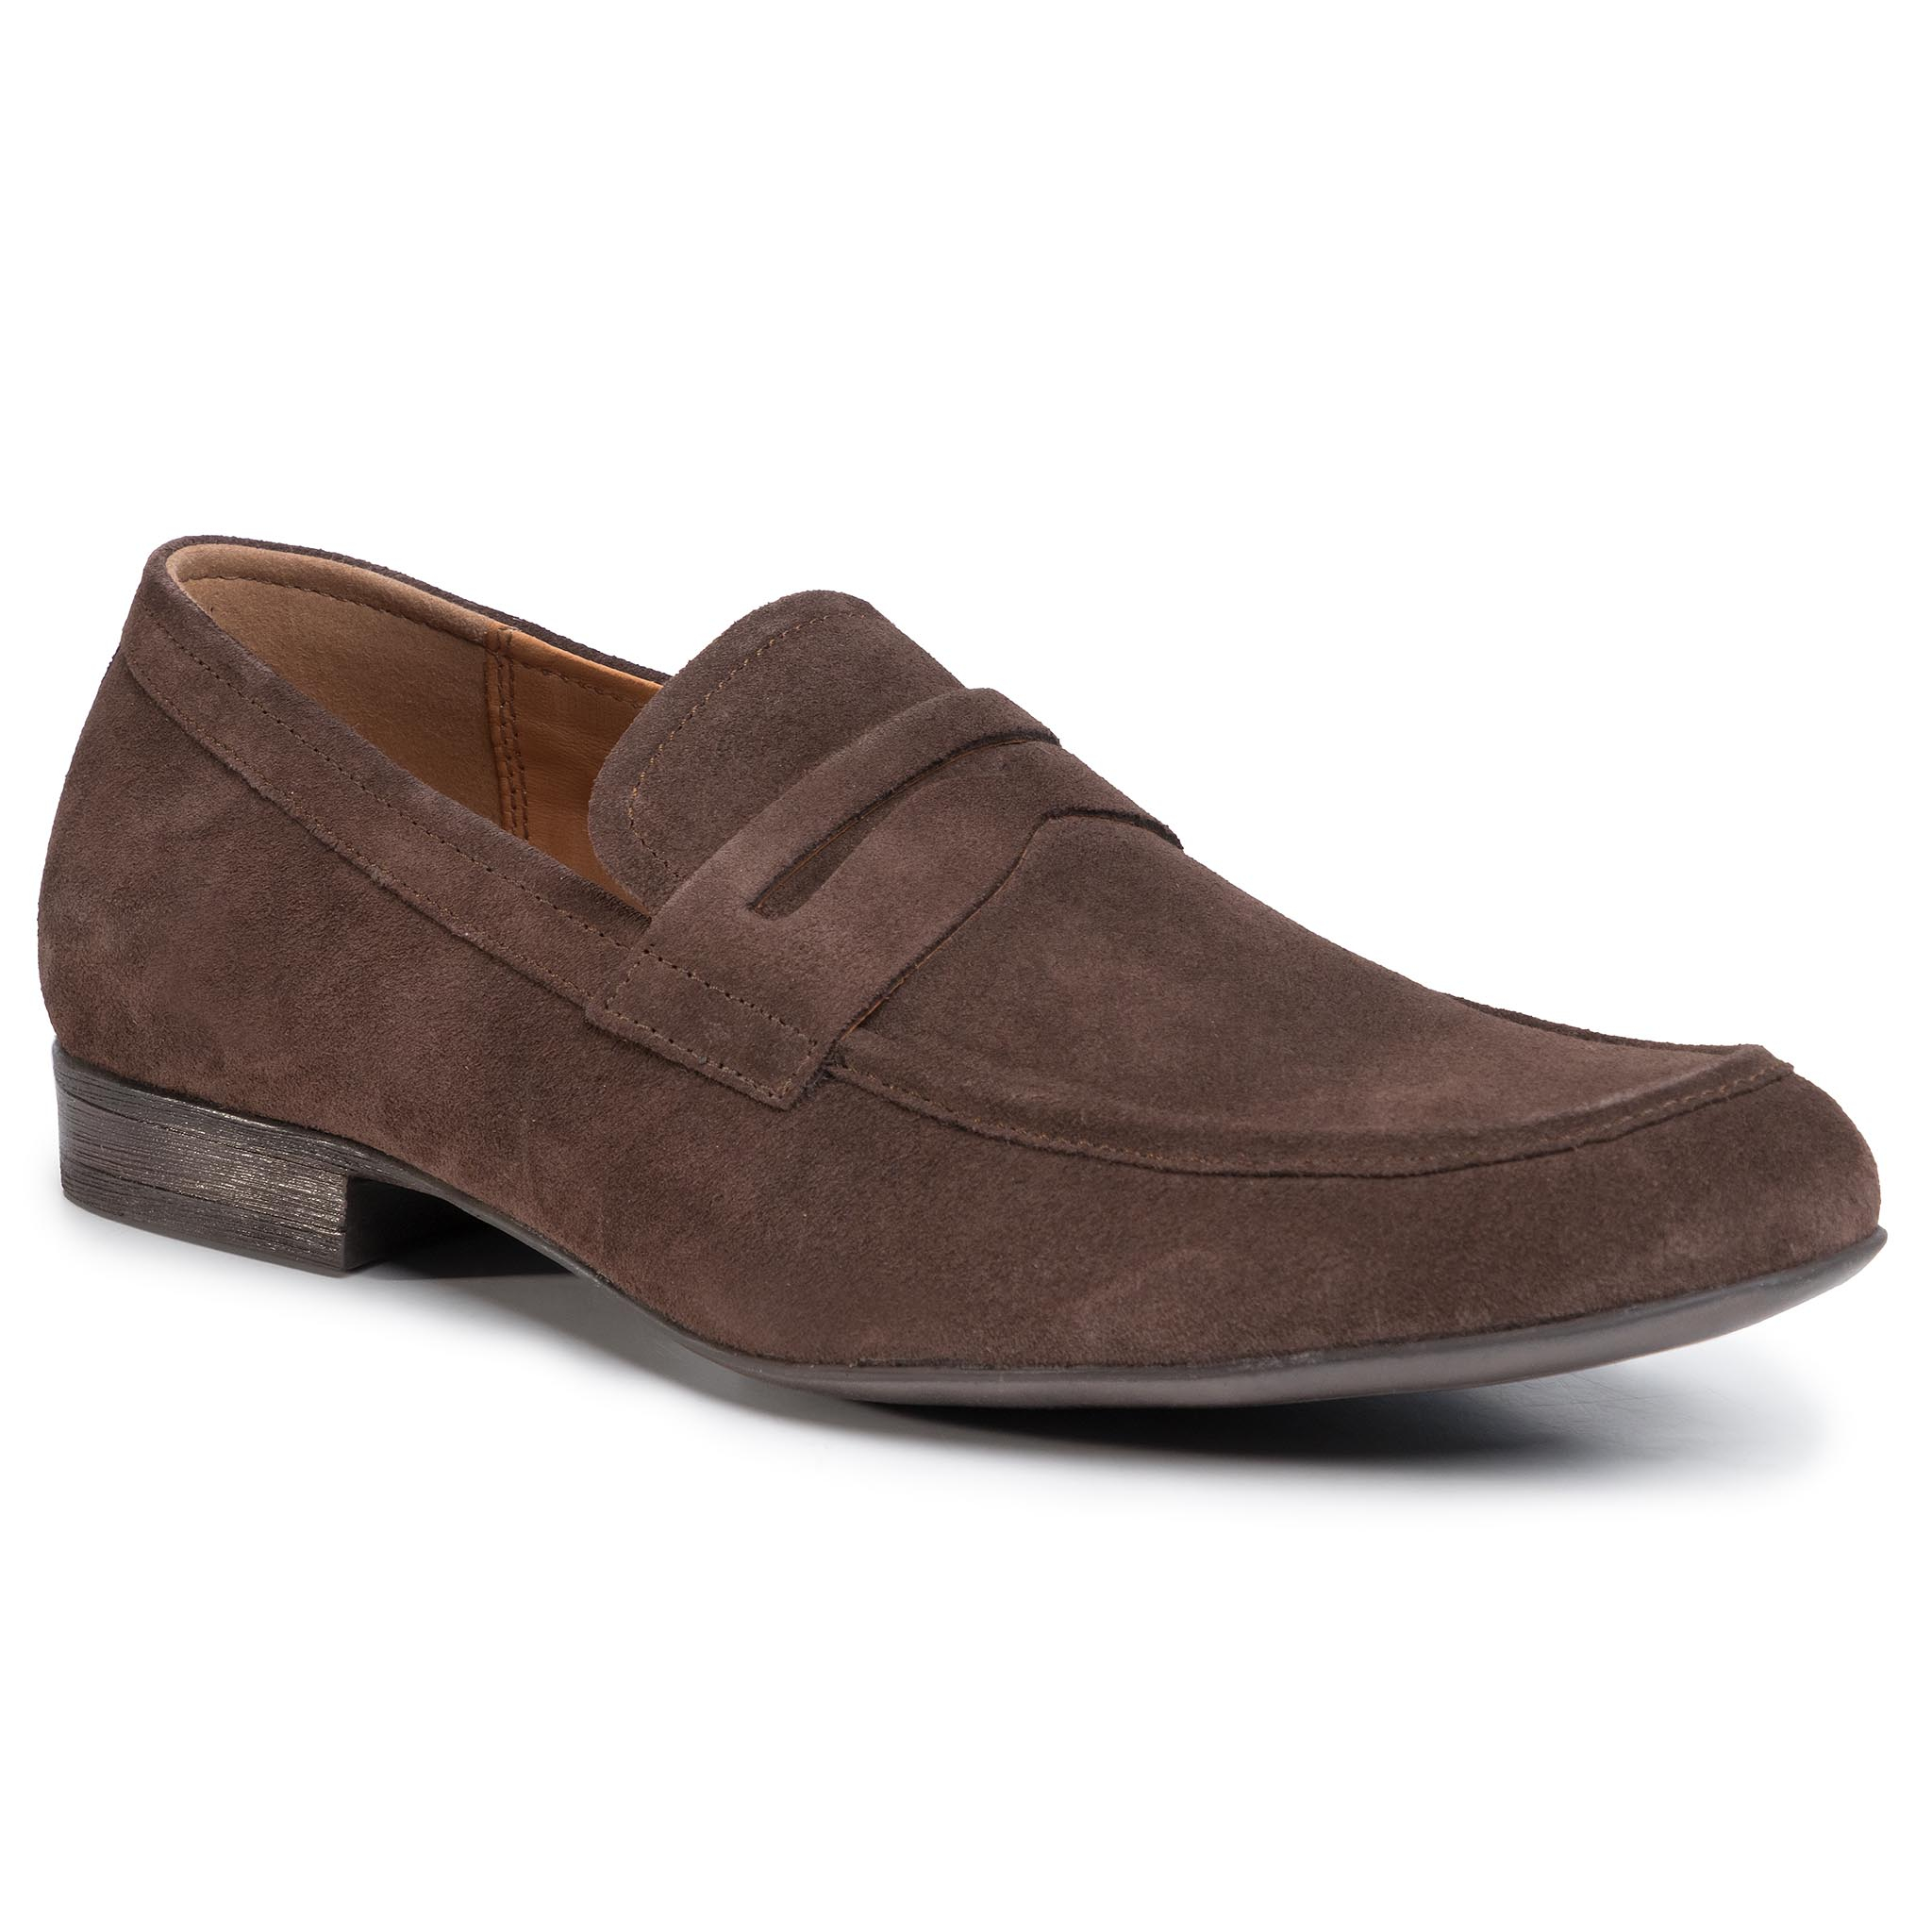 Pantofi Lasocki For Men - Mb-Naxos-09 Chocolate Brown imagine